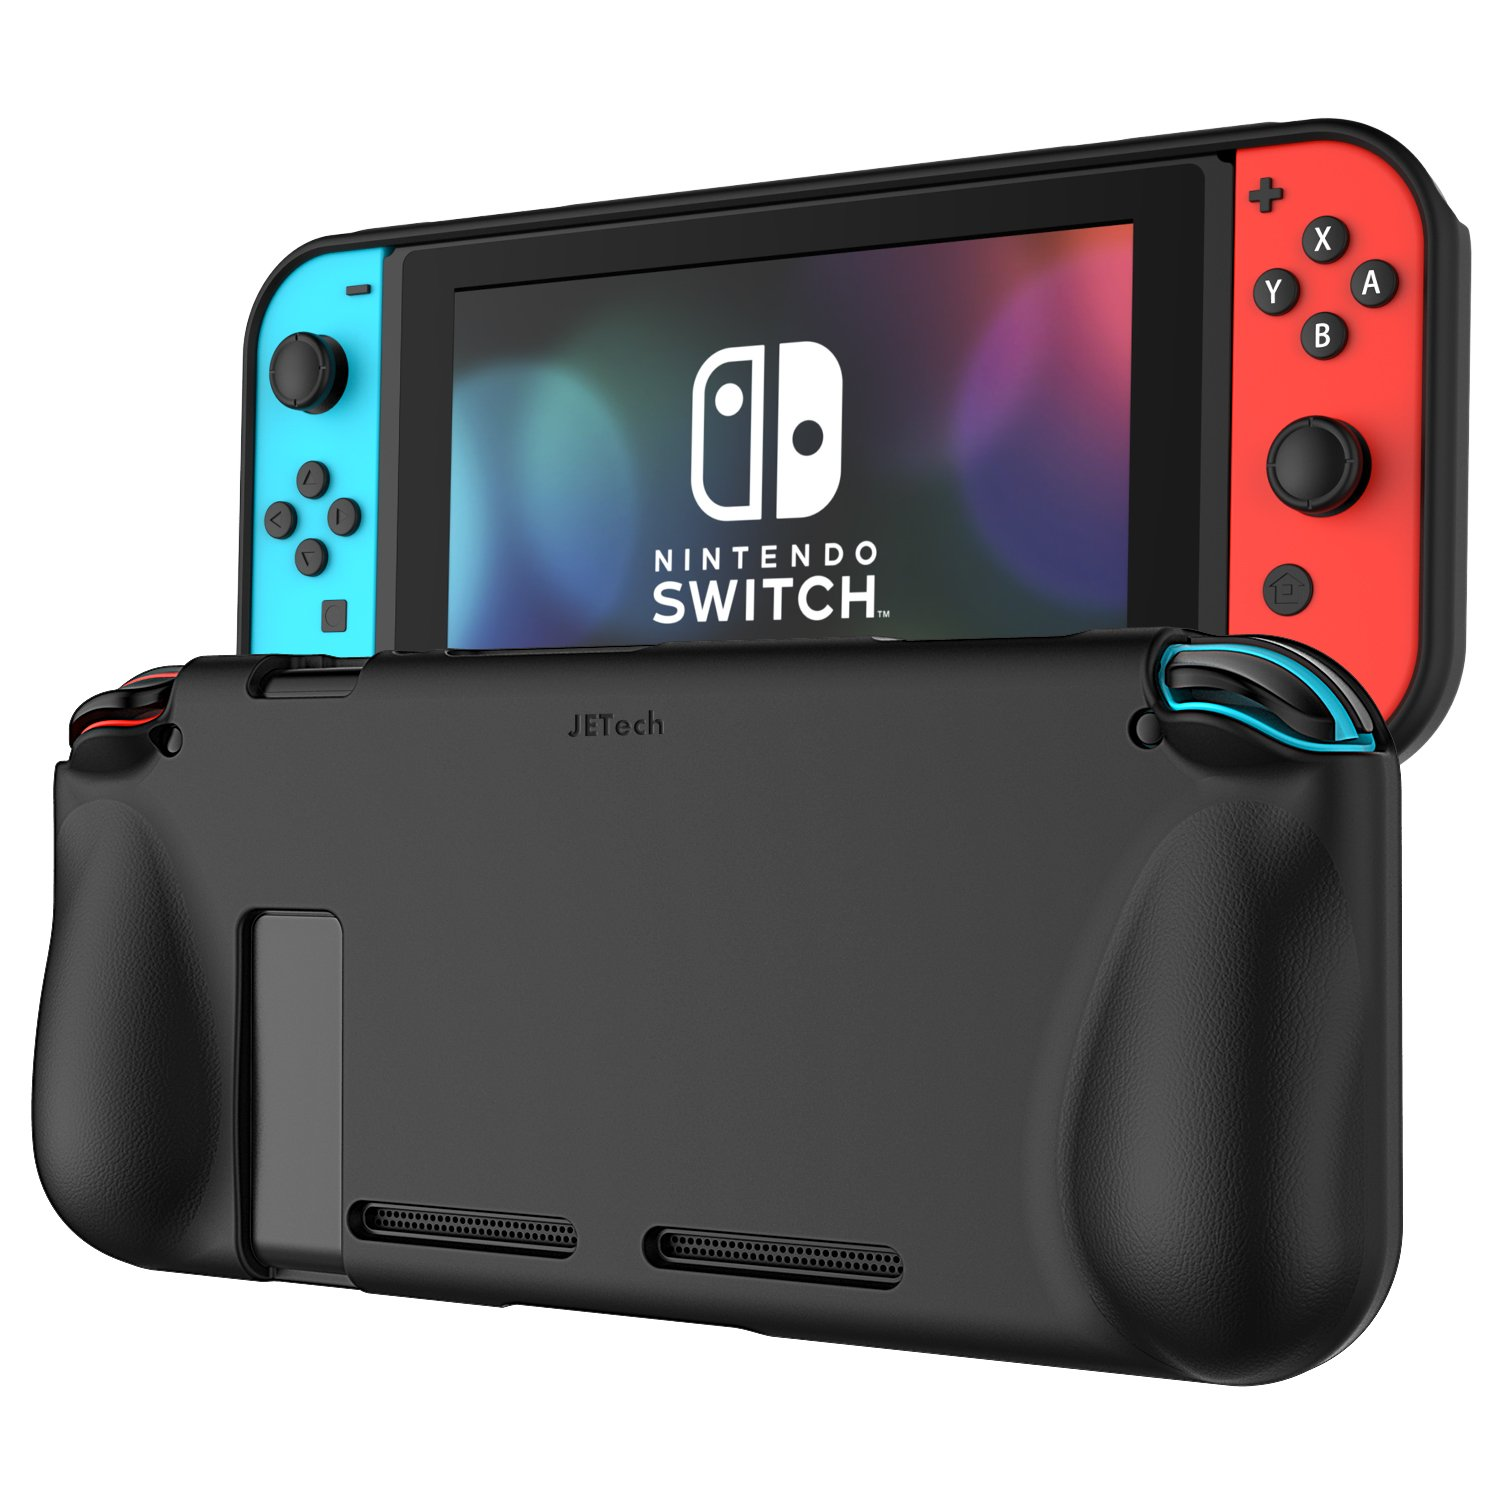 nintendo switch ot now you 39 re playing with power hybrid. Black Bedroom Furniture Sets. Home Design Ideas